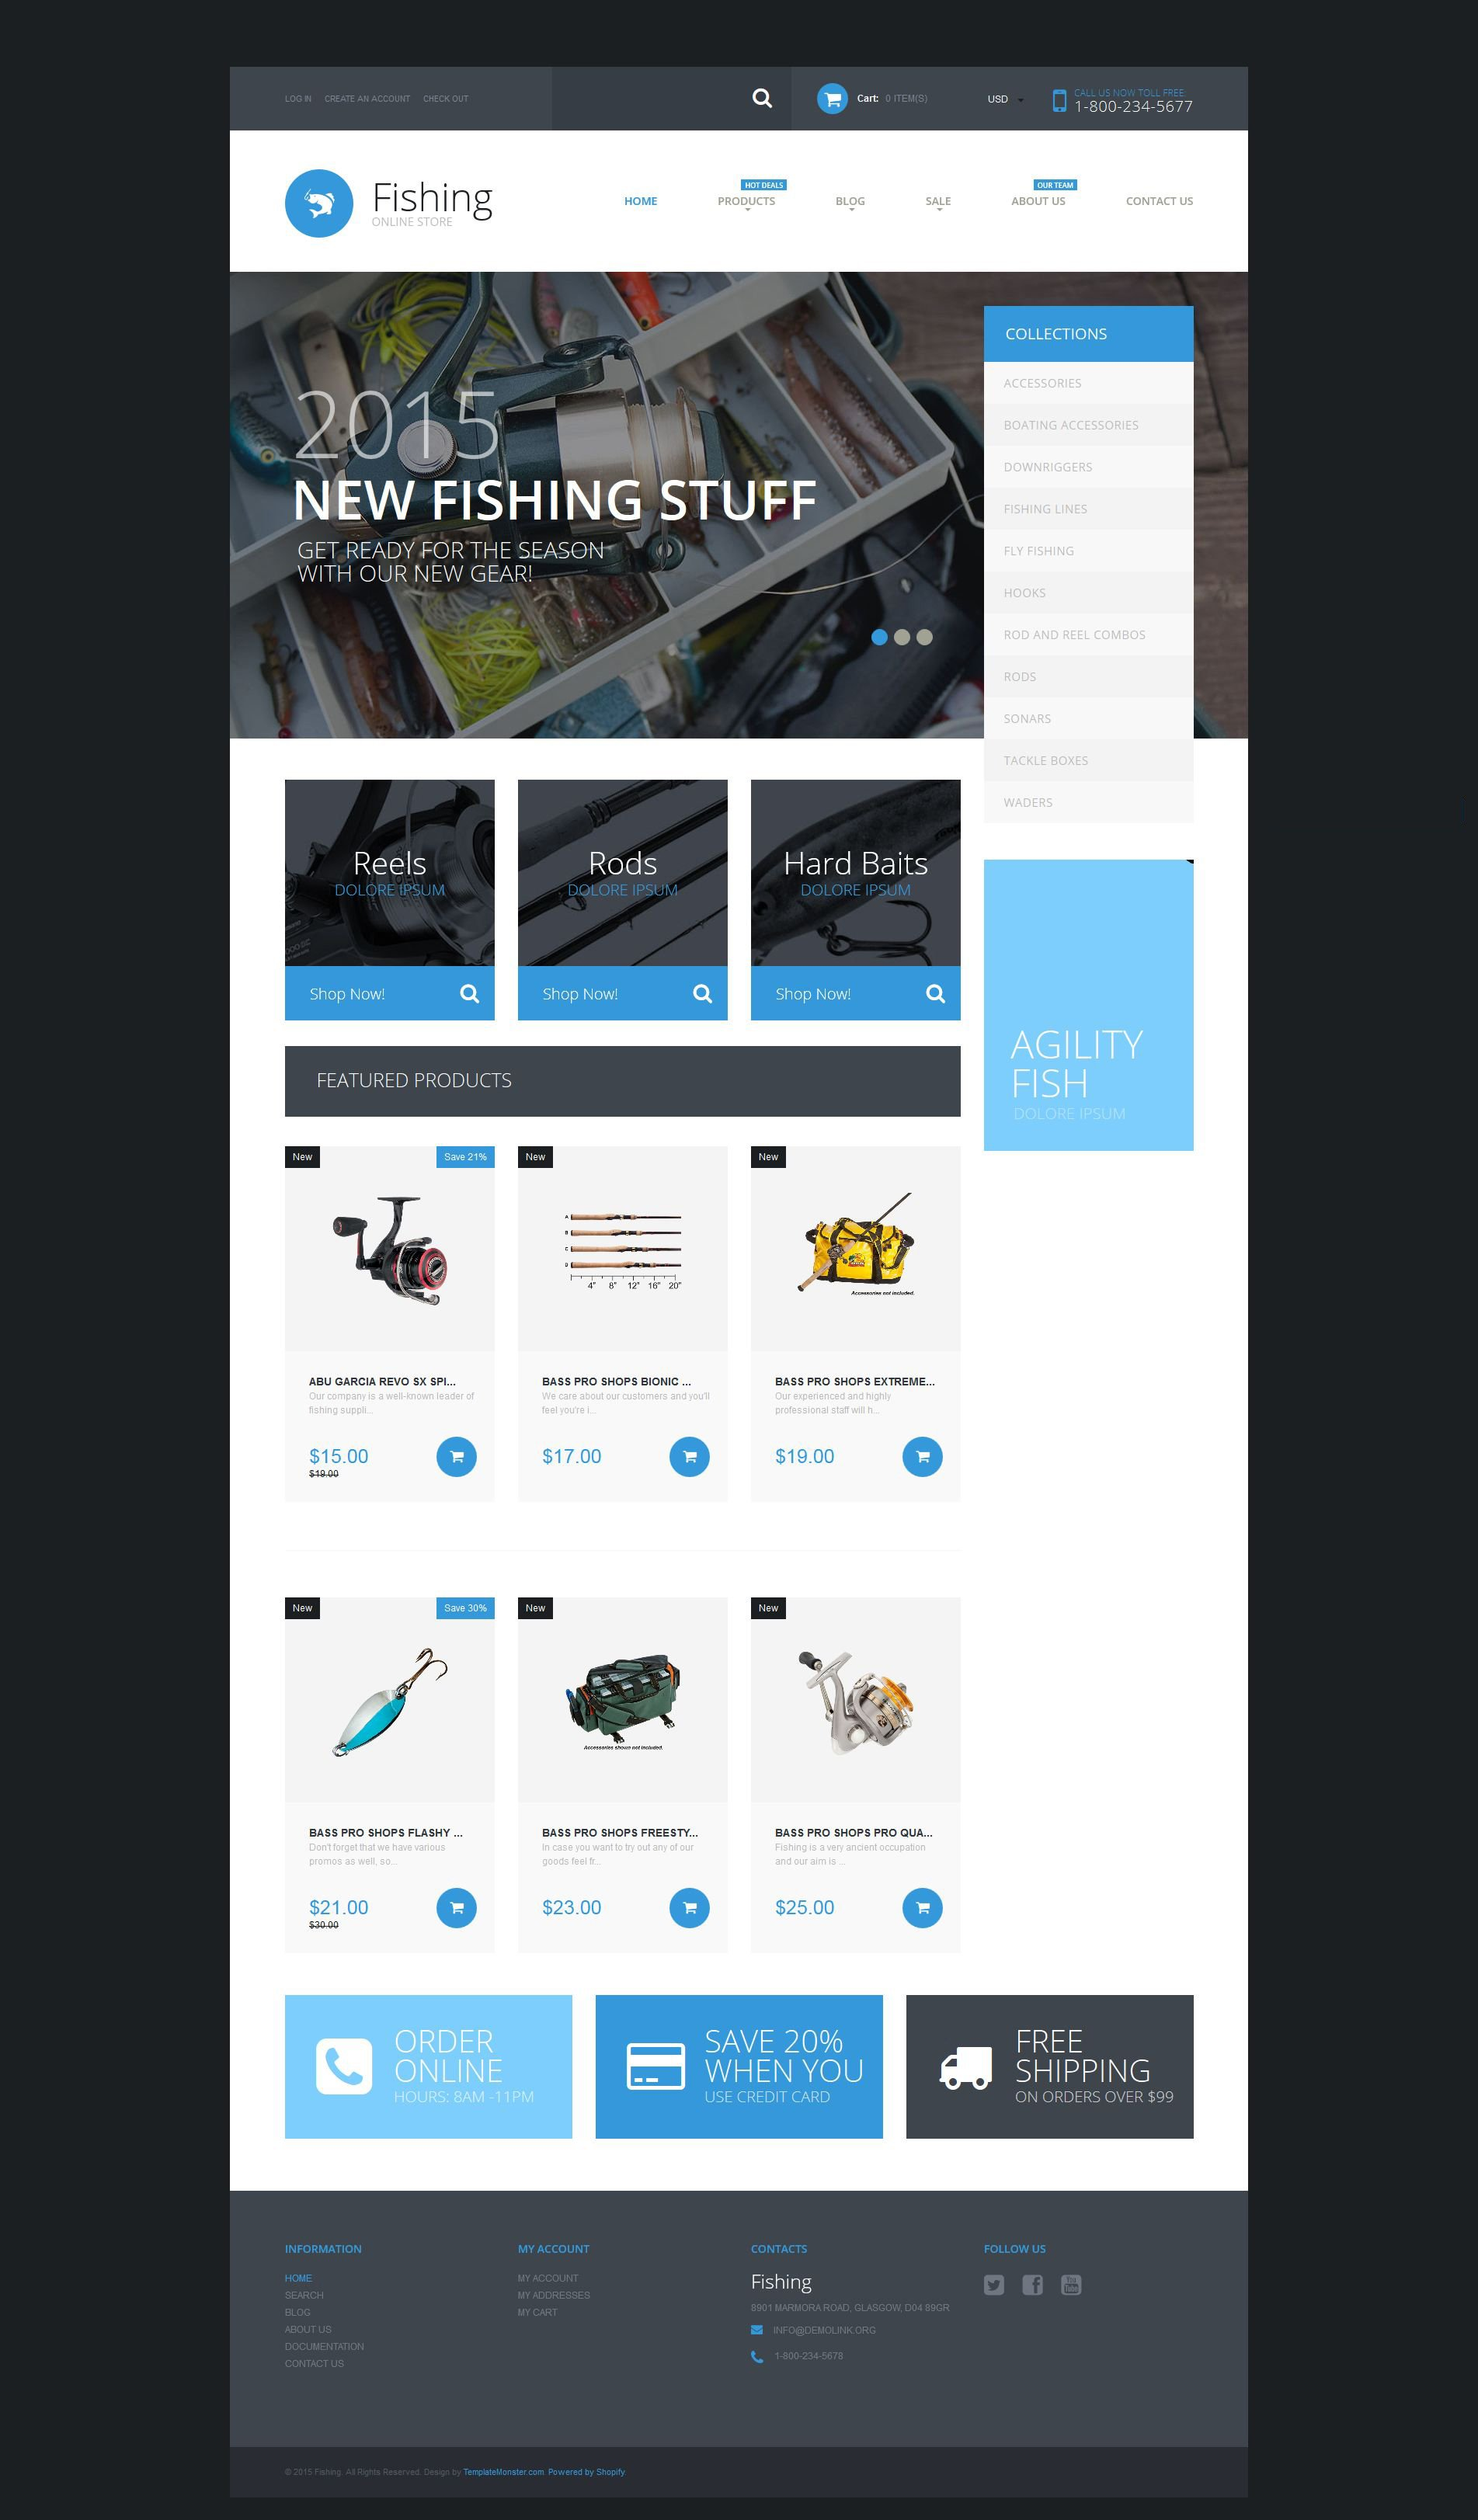 The Fishing Store Shopify Design 53080, one of the best Shopify themes of its kind (sport, most popular), also known as fishing store Shopify template, site Shopify template, fisherman Shopify template, boat Shopify template, rods Shopify template, reels Shopify template, baits Shopify template, swimbaits Shopify template, jigs Shopify template, rogs Shopify template, tools Shopify template, spinning Shopify template, fishing Shopify template, line and related with fishing store, site, fisherman, boat, rods, reels, baits, swimbaits, jigs, rogs, tools, spinning, fishing, line, etc.